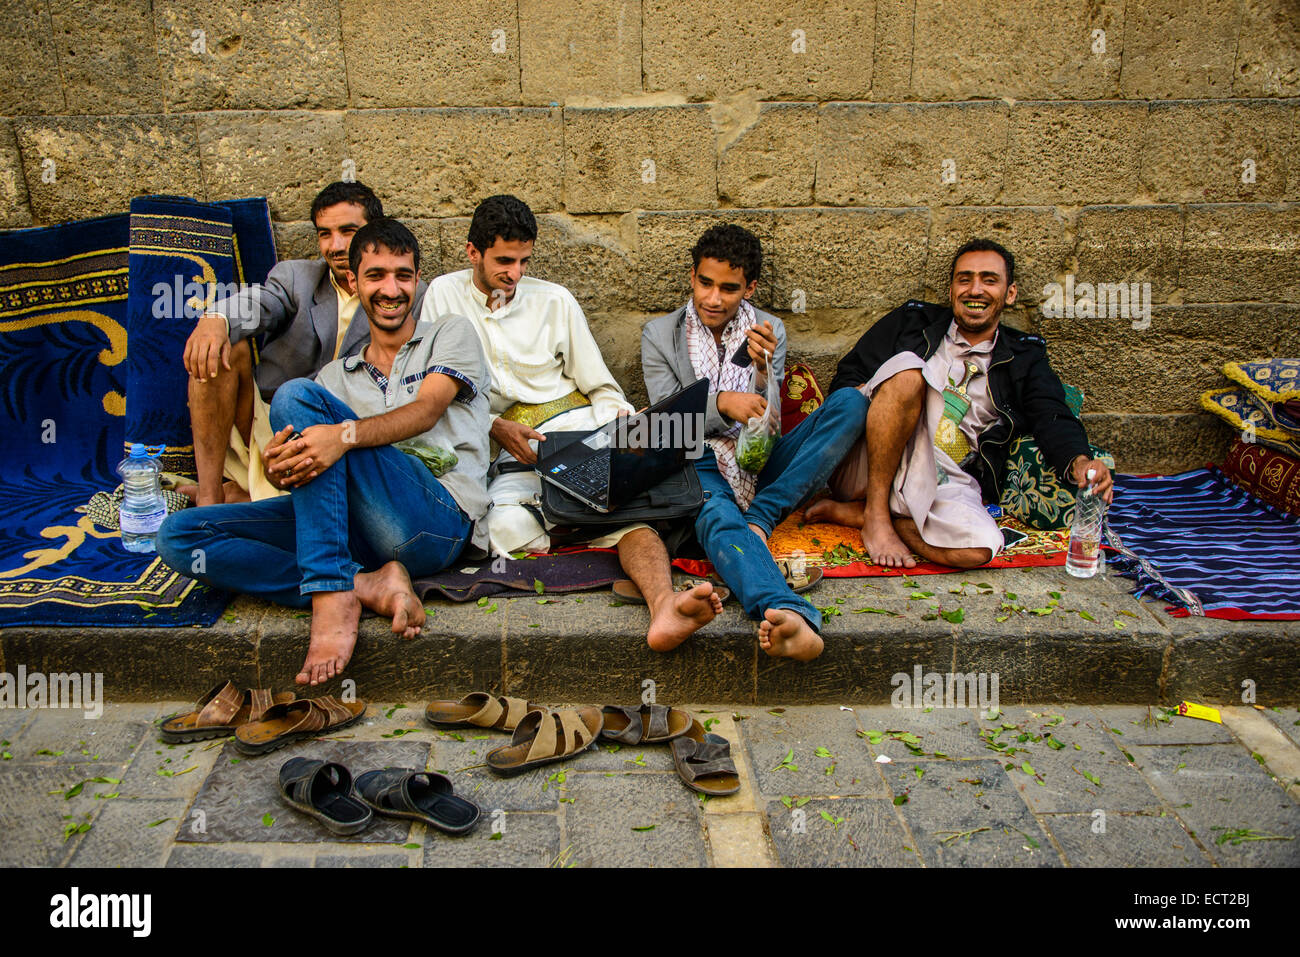 Men sitting in front of a house in the old city, Sana'a, Yemen - Stock Image